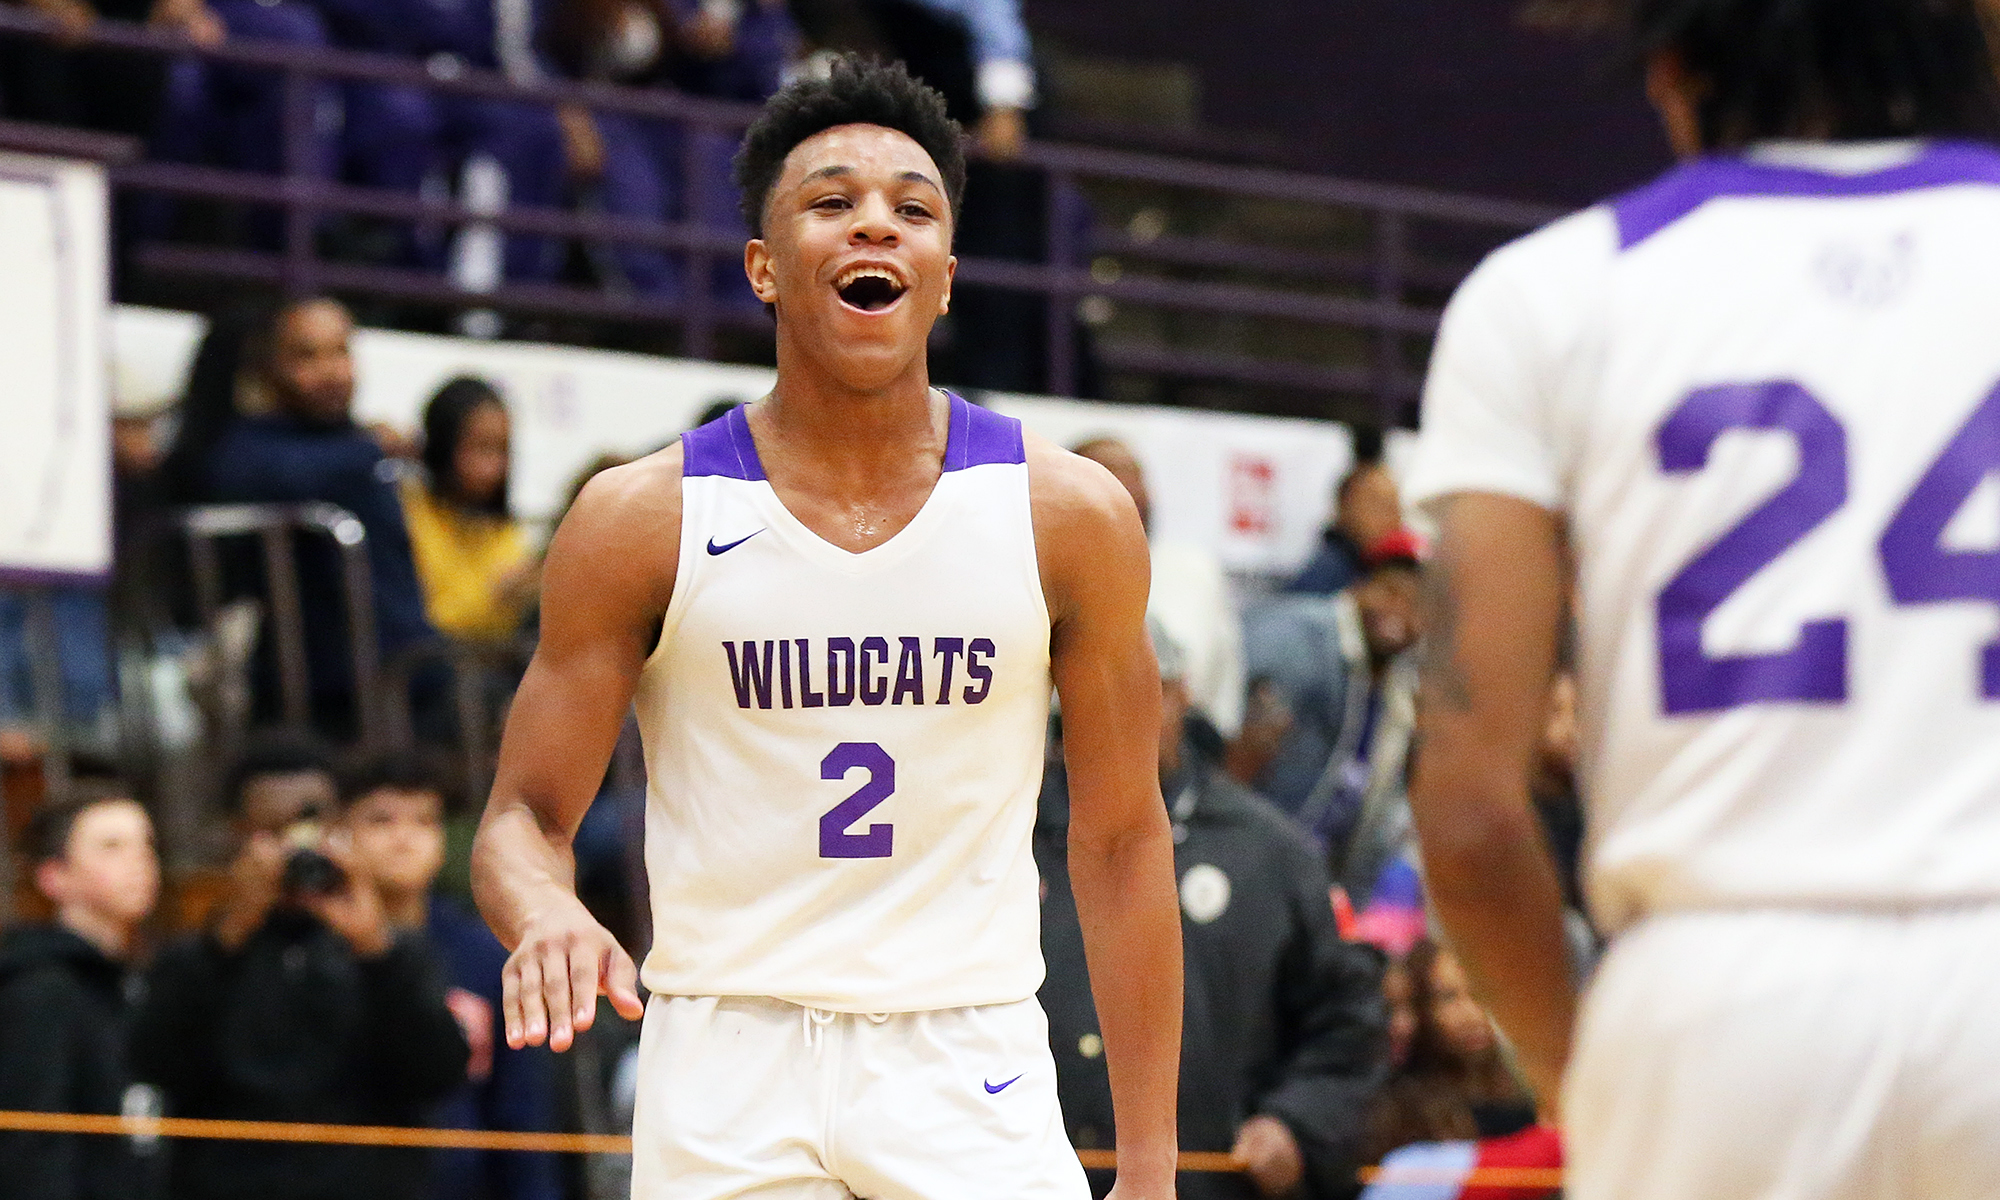 Thornton's DJ Williams (2) starts to celebrate with Ari Brown (24) after the Wildcats defeat Homewood-Flossmoor.